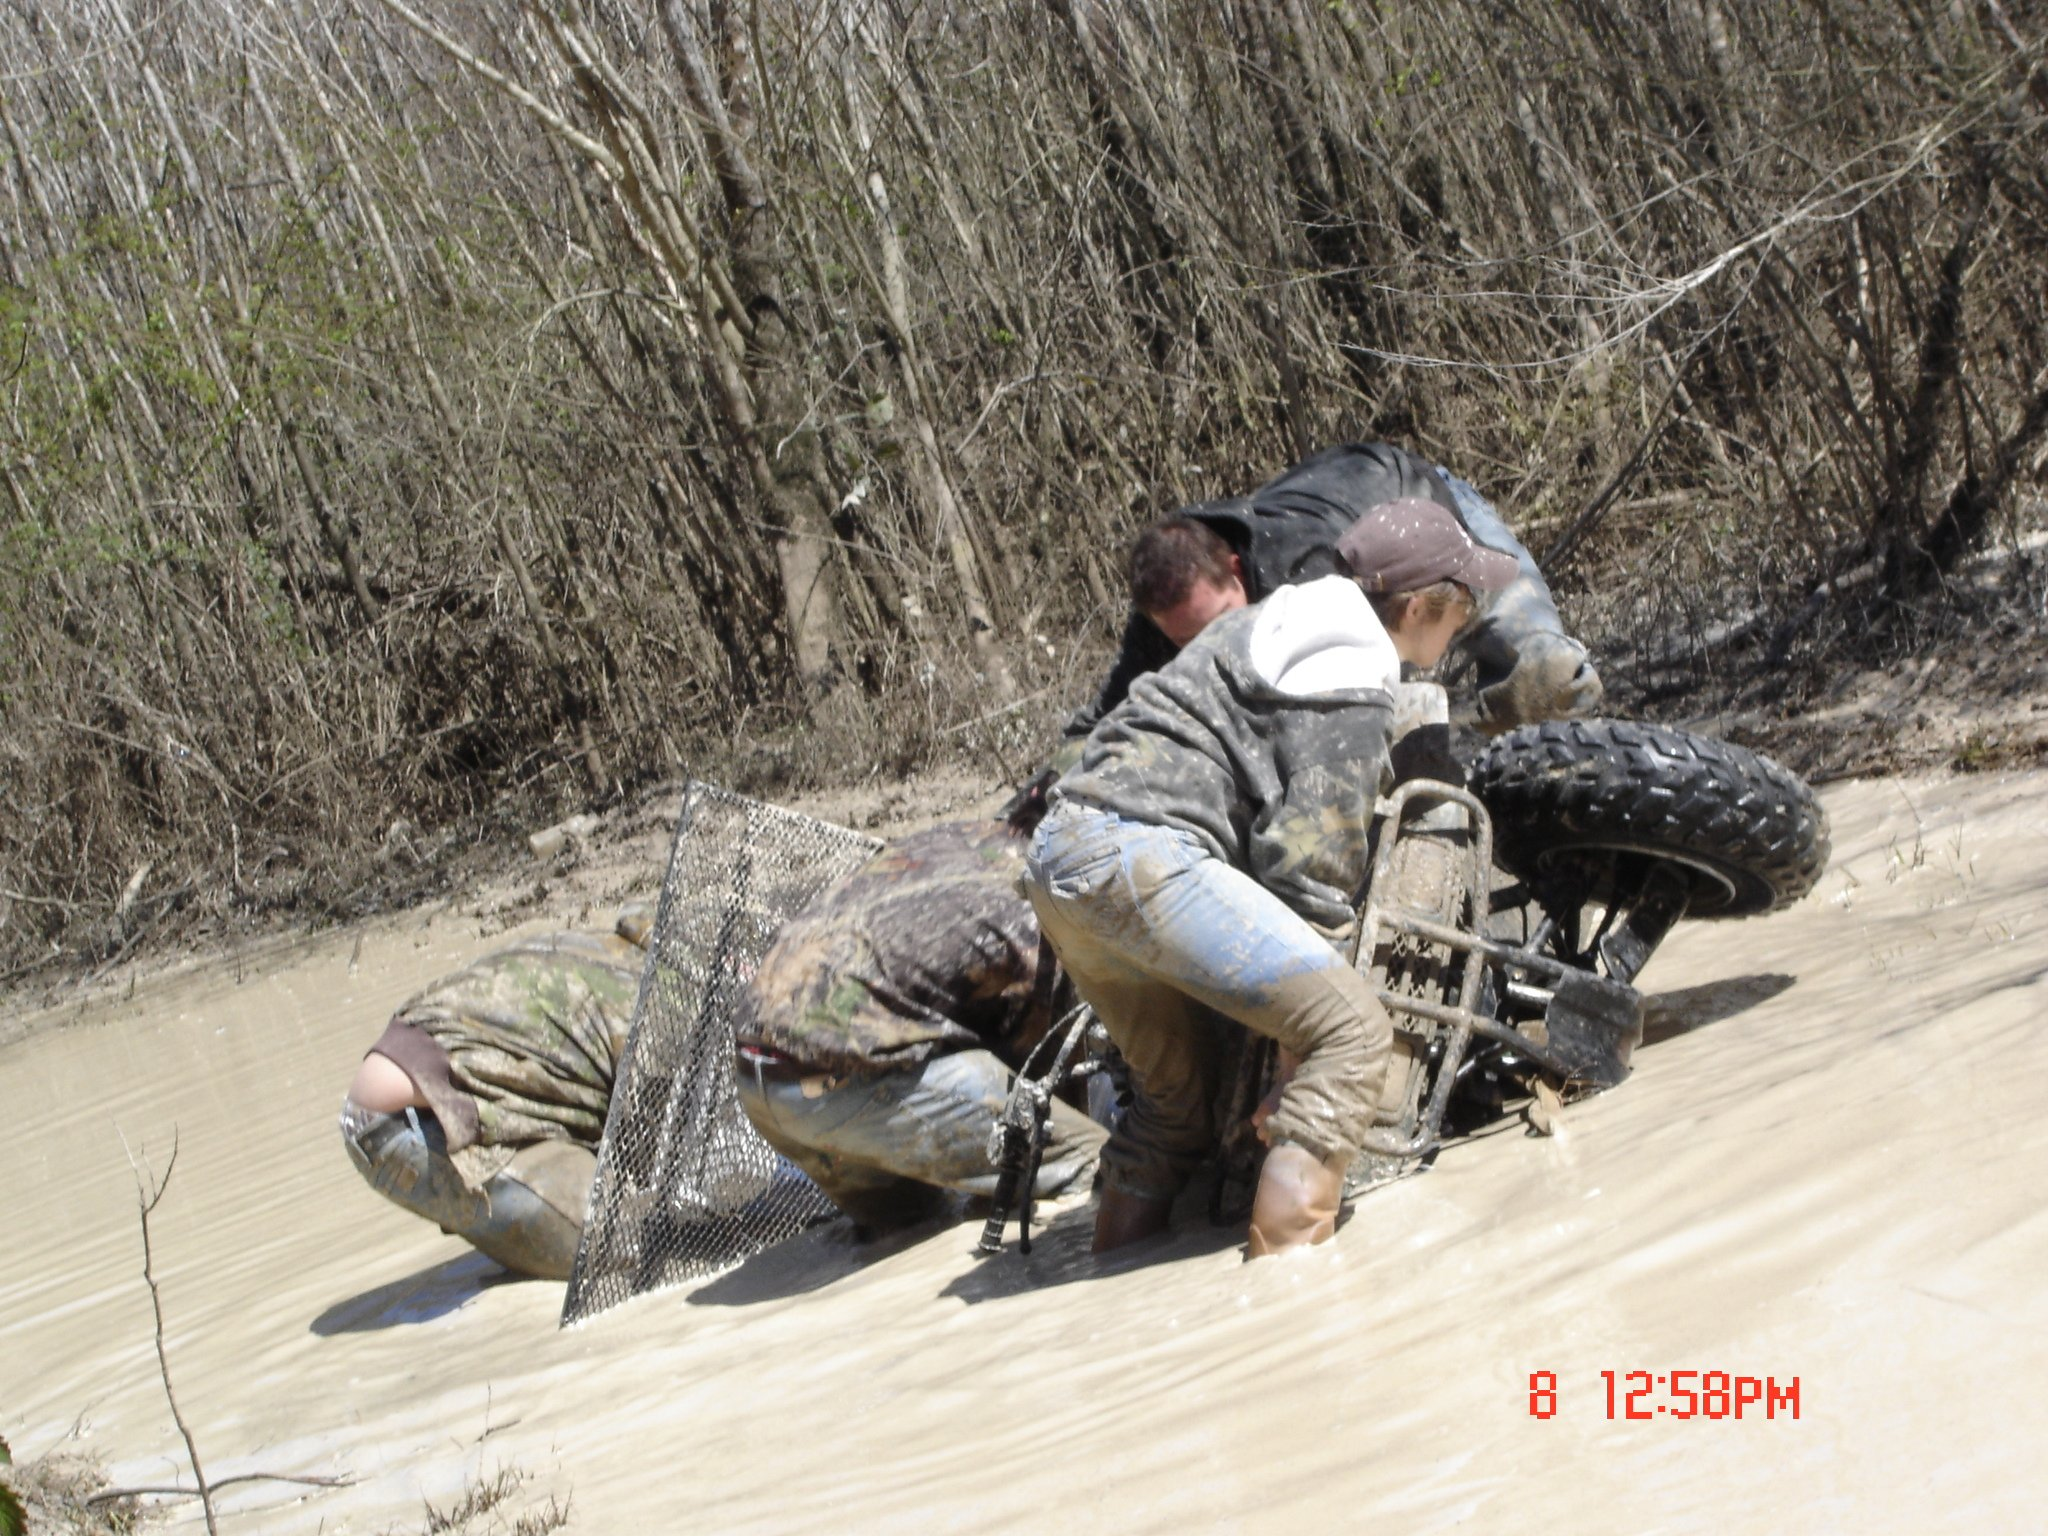 Mud/Trail Ride Pics and Videos-dsc03511.jpg